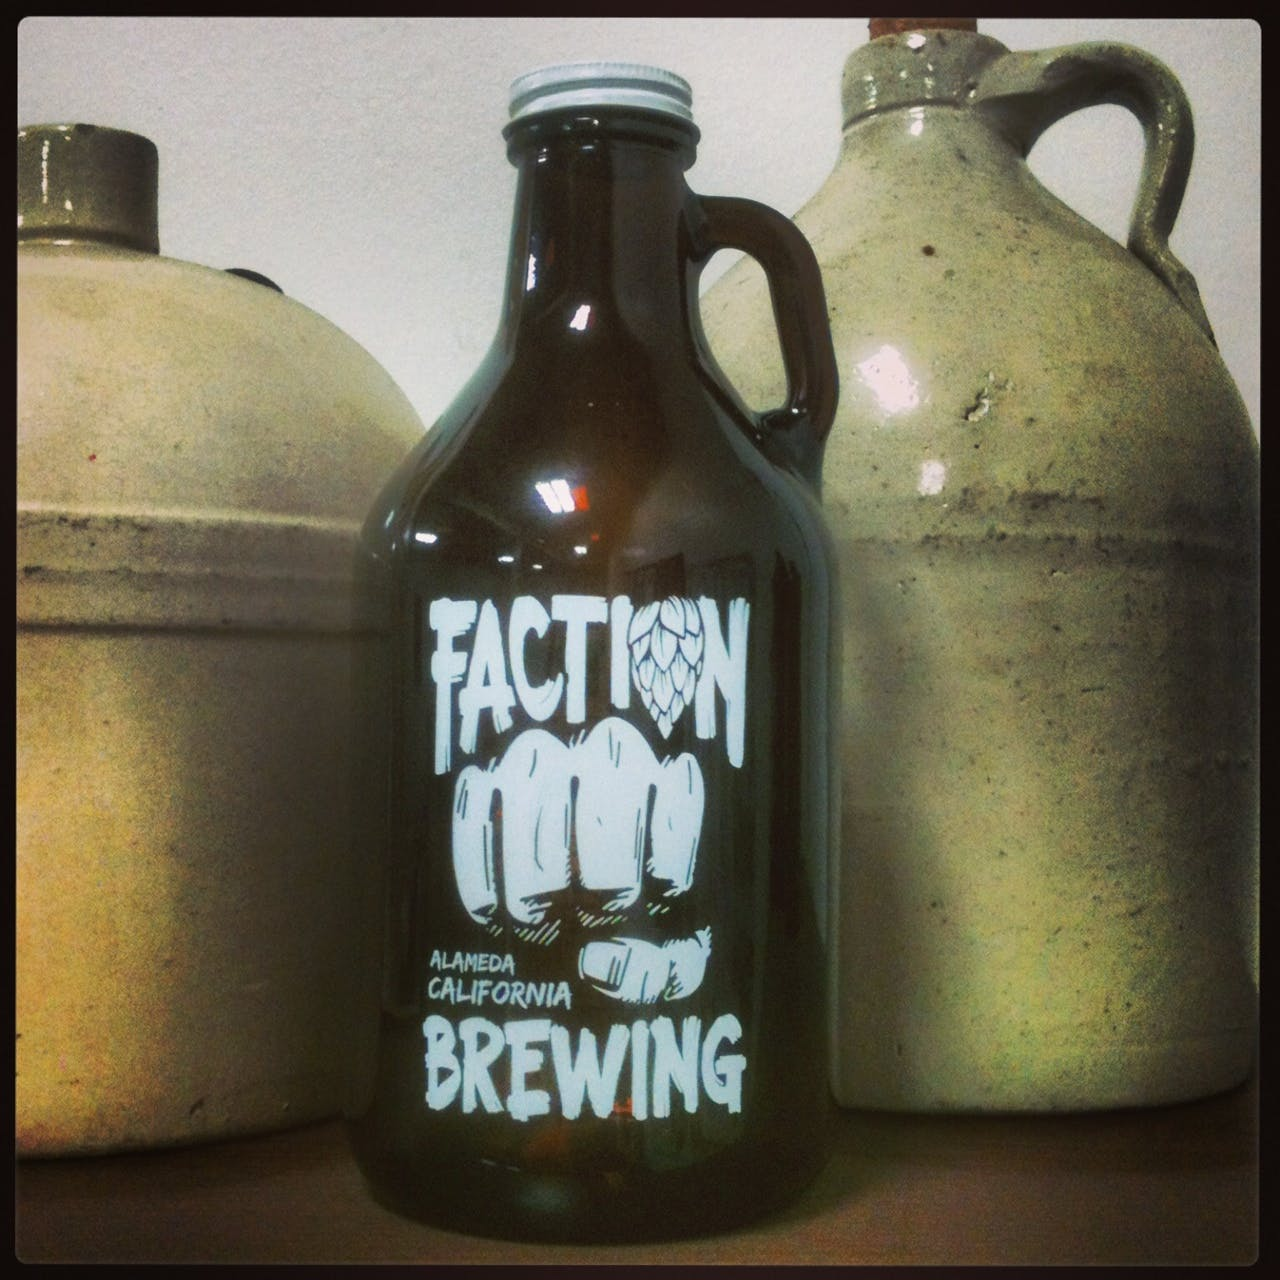 32 oz Mini Amber Growler Growler sold by Flour City Growlers